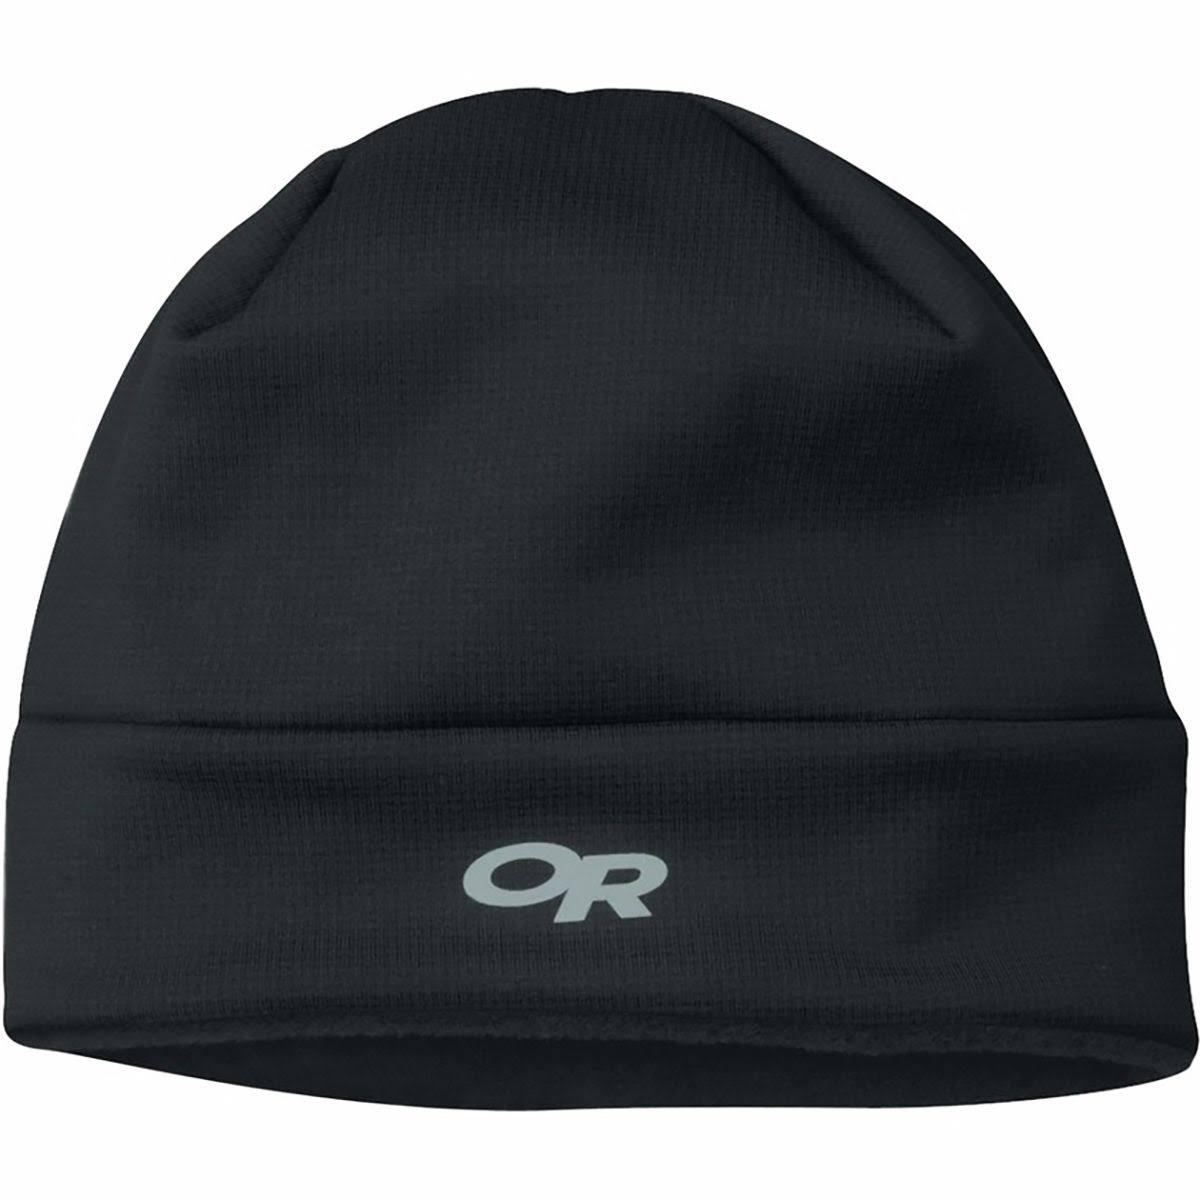 Outdoor Research Wind Pro Hat - Black, Large/X-Large